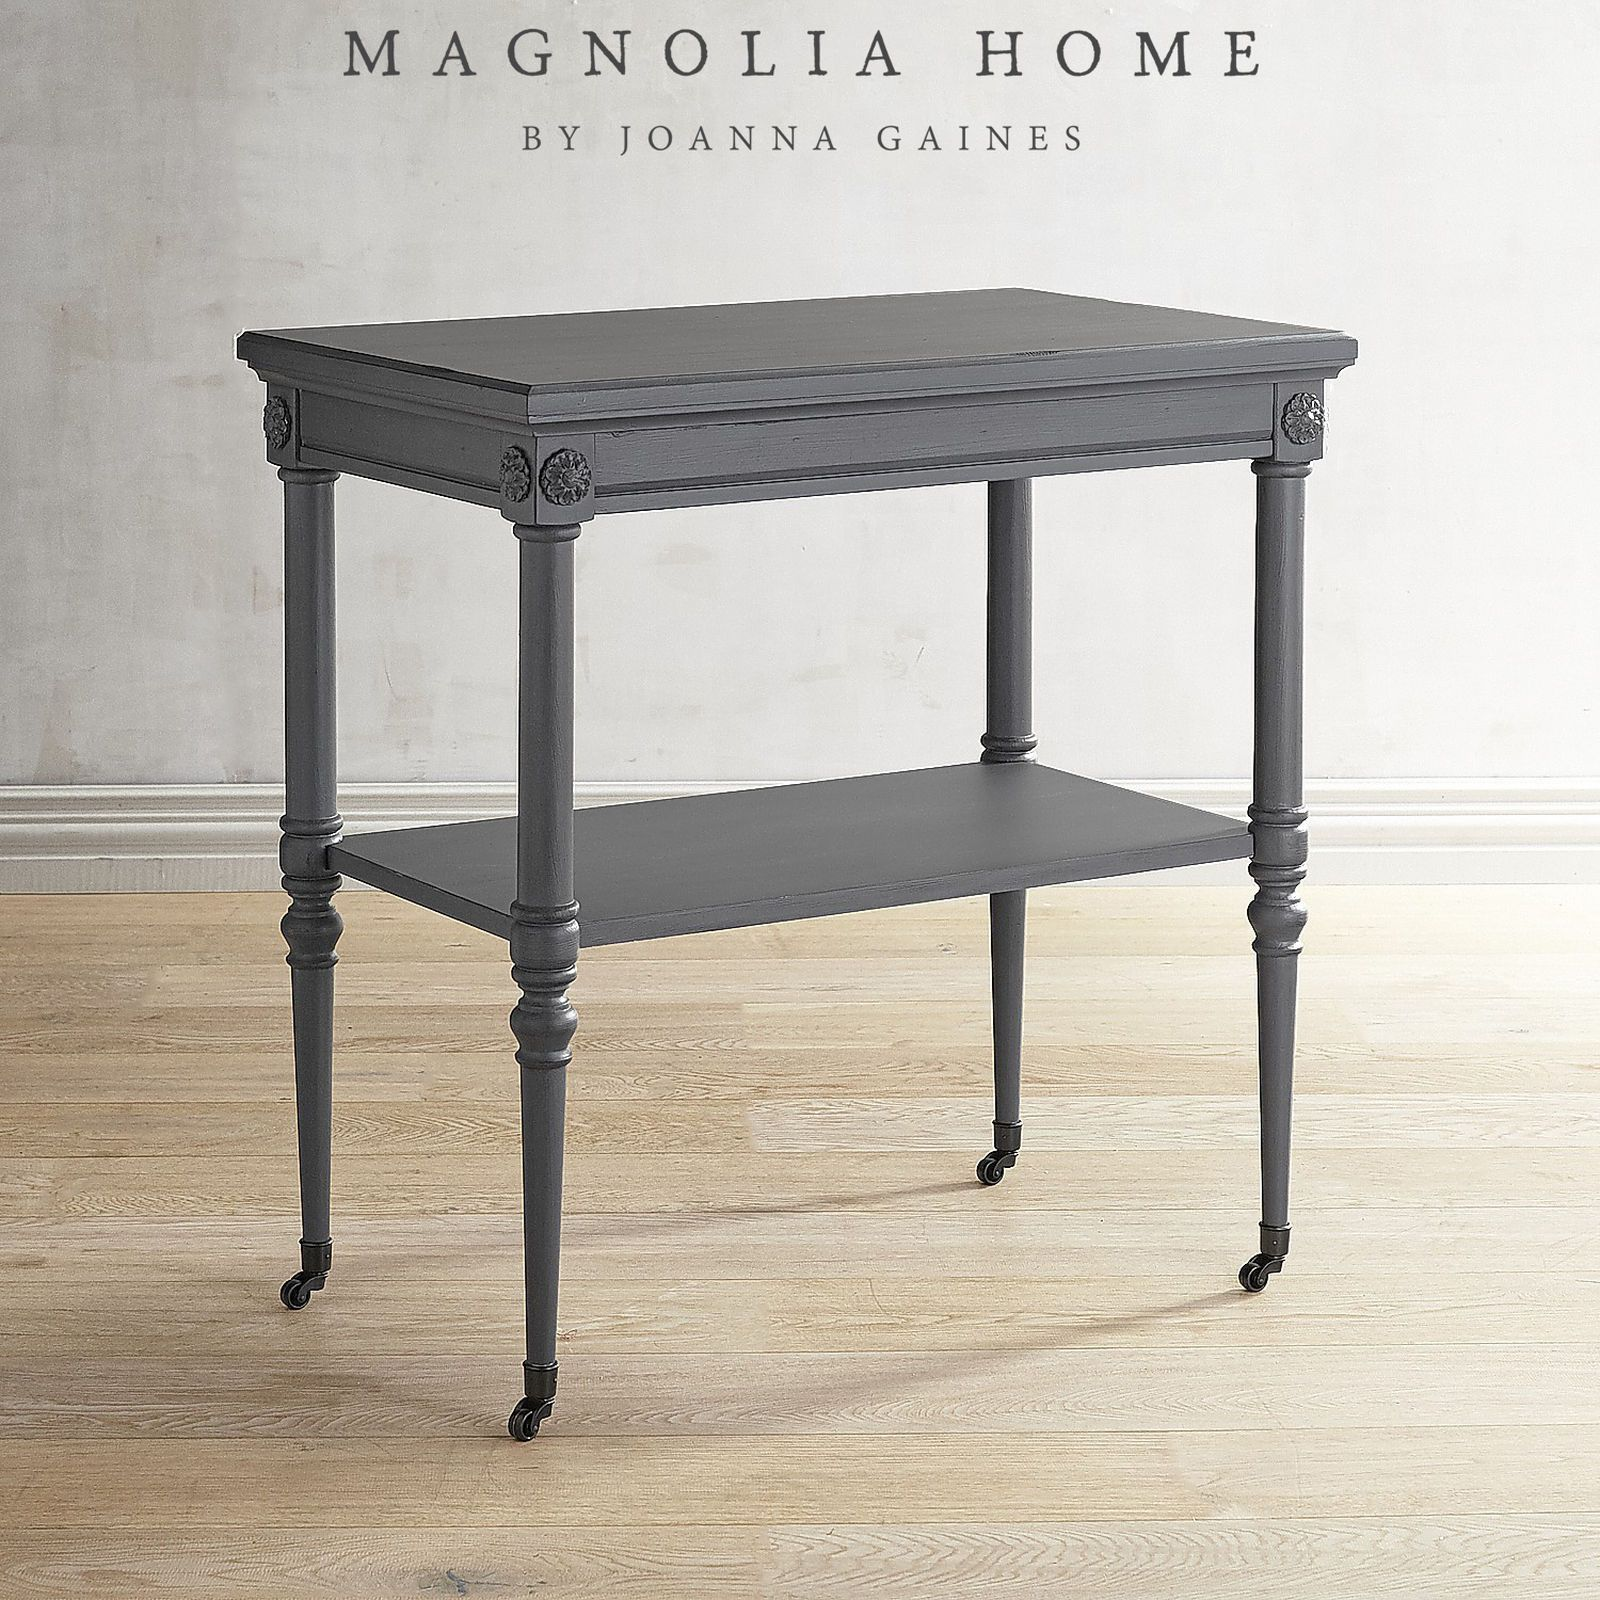 magnolia home petite rosette gray accent table rosettes small drum style ott with drawers unusual living room ornaments glass top for coffee lucite sofa outdoor grill island